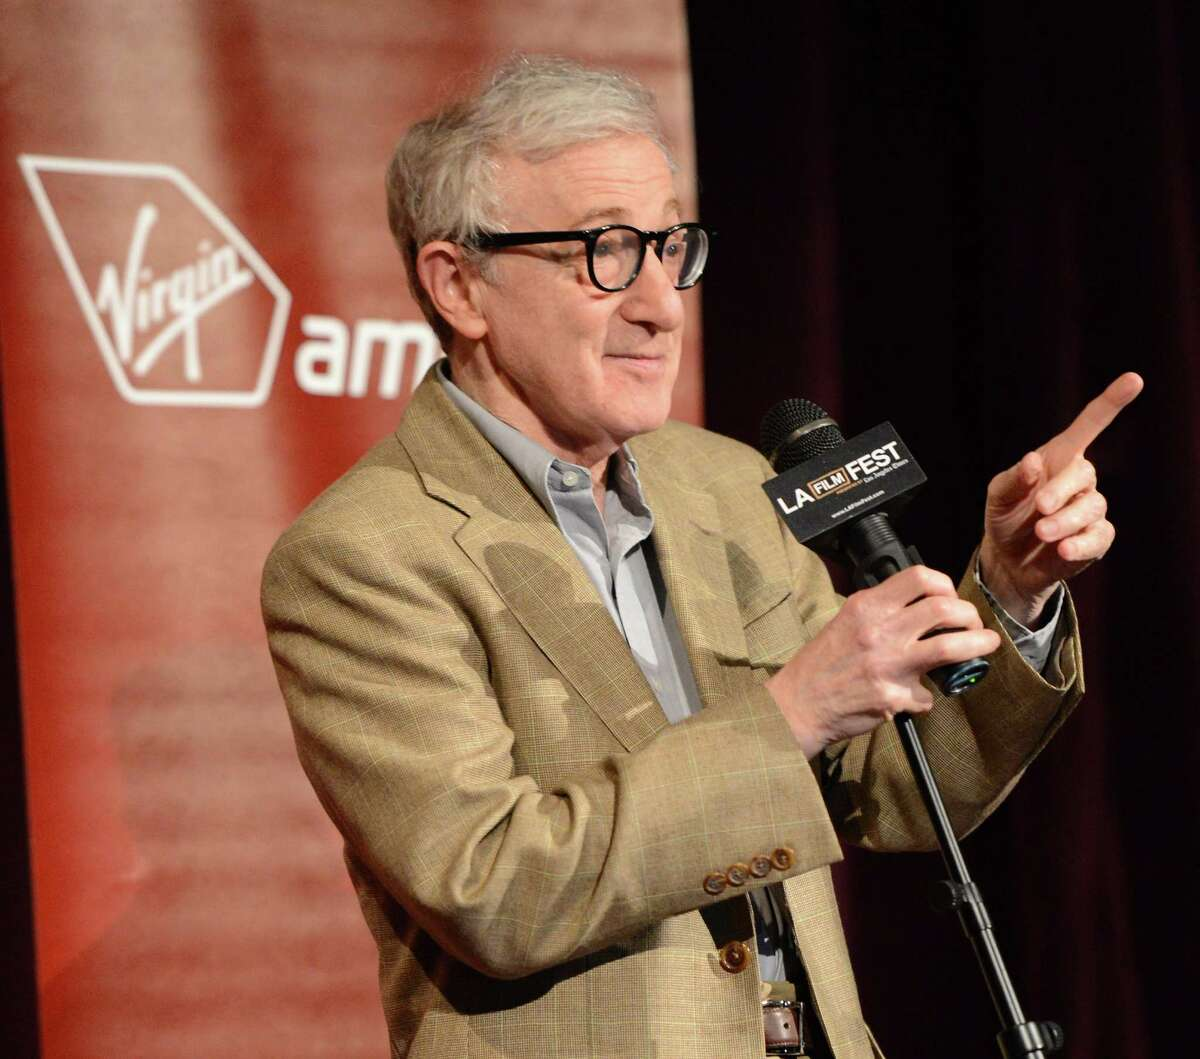 FILE JANUARY 13: It was reported January 13, 2015 that Woody Allen has signed a one-year TV deal with Amazon, airing on Amazon Prime Instant Video. This will be Allens first TV series. LOS ANGELES, CA - JUNE 14: Director/producer Woody Allen attends Film Independent's 2012 Los Angeles Film Festival Premiere of Sony Pictures Classics'